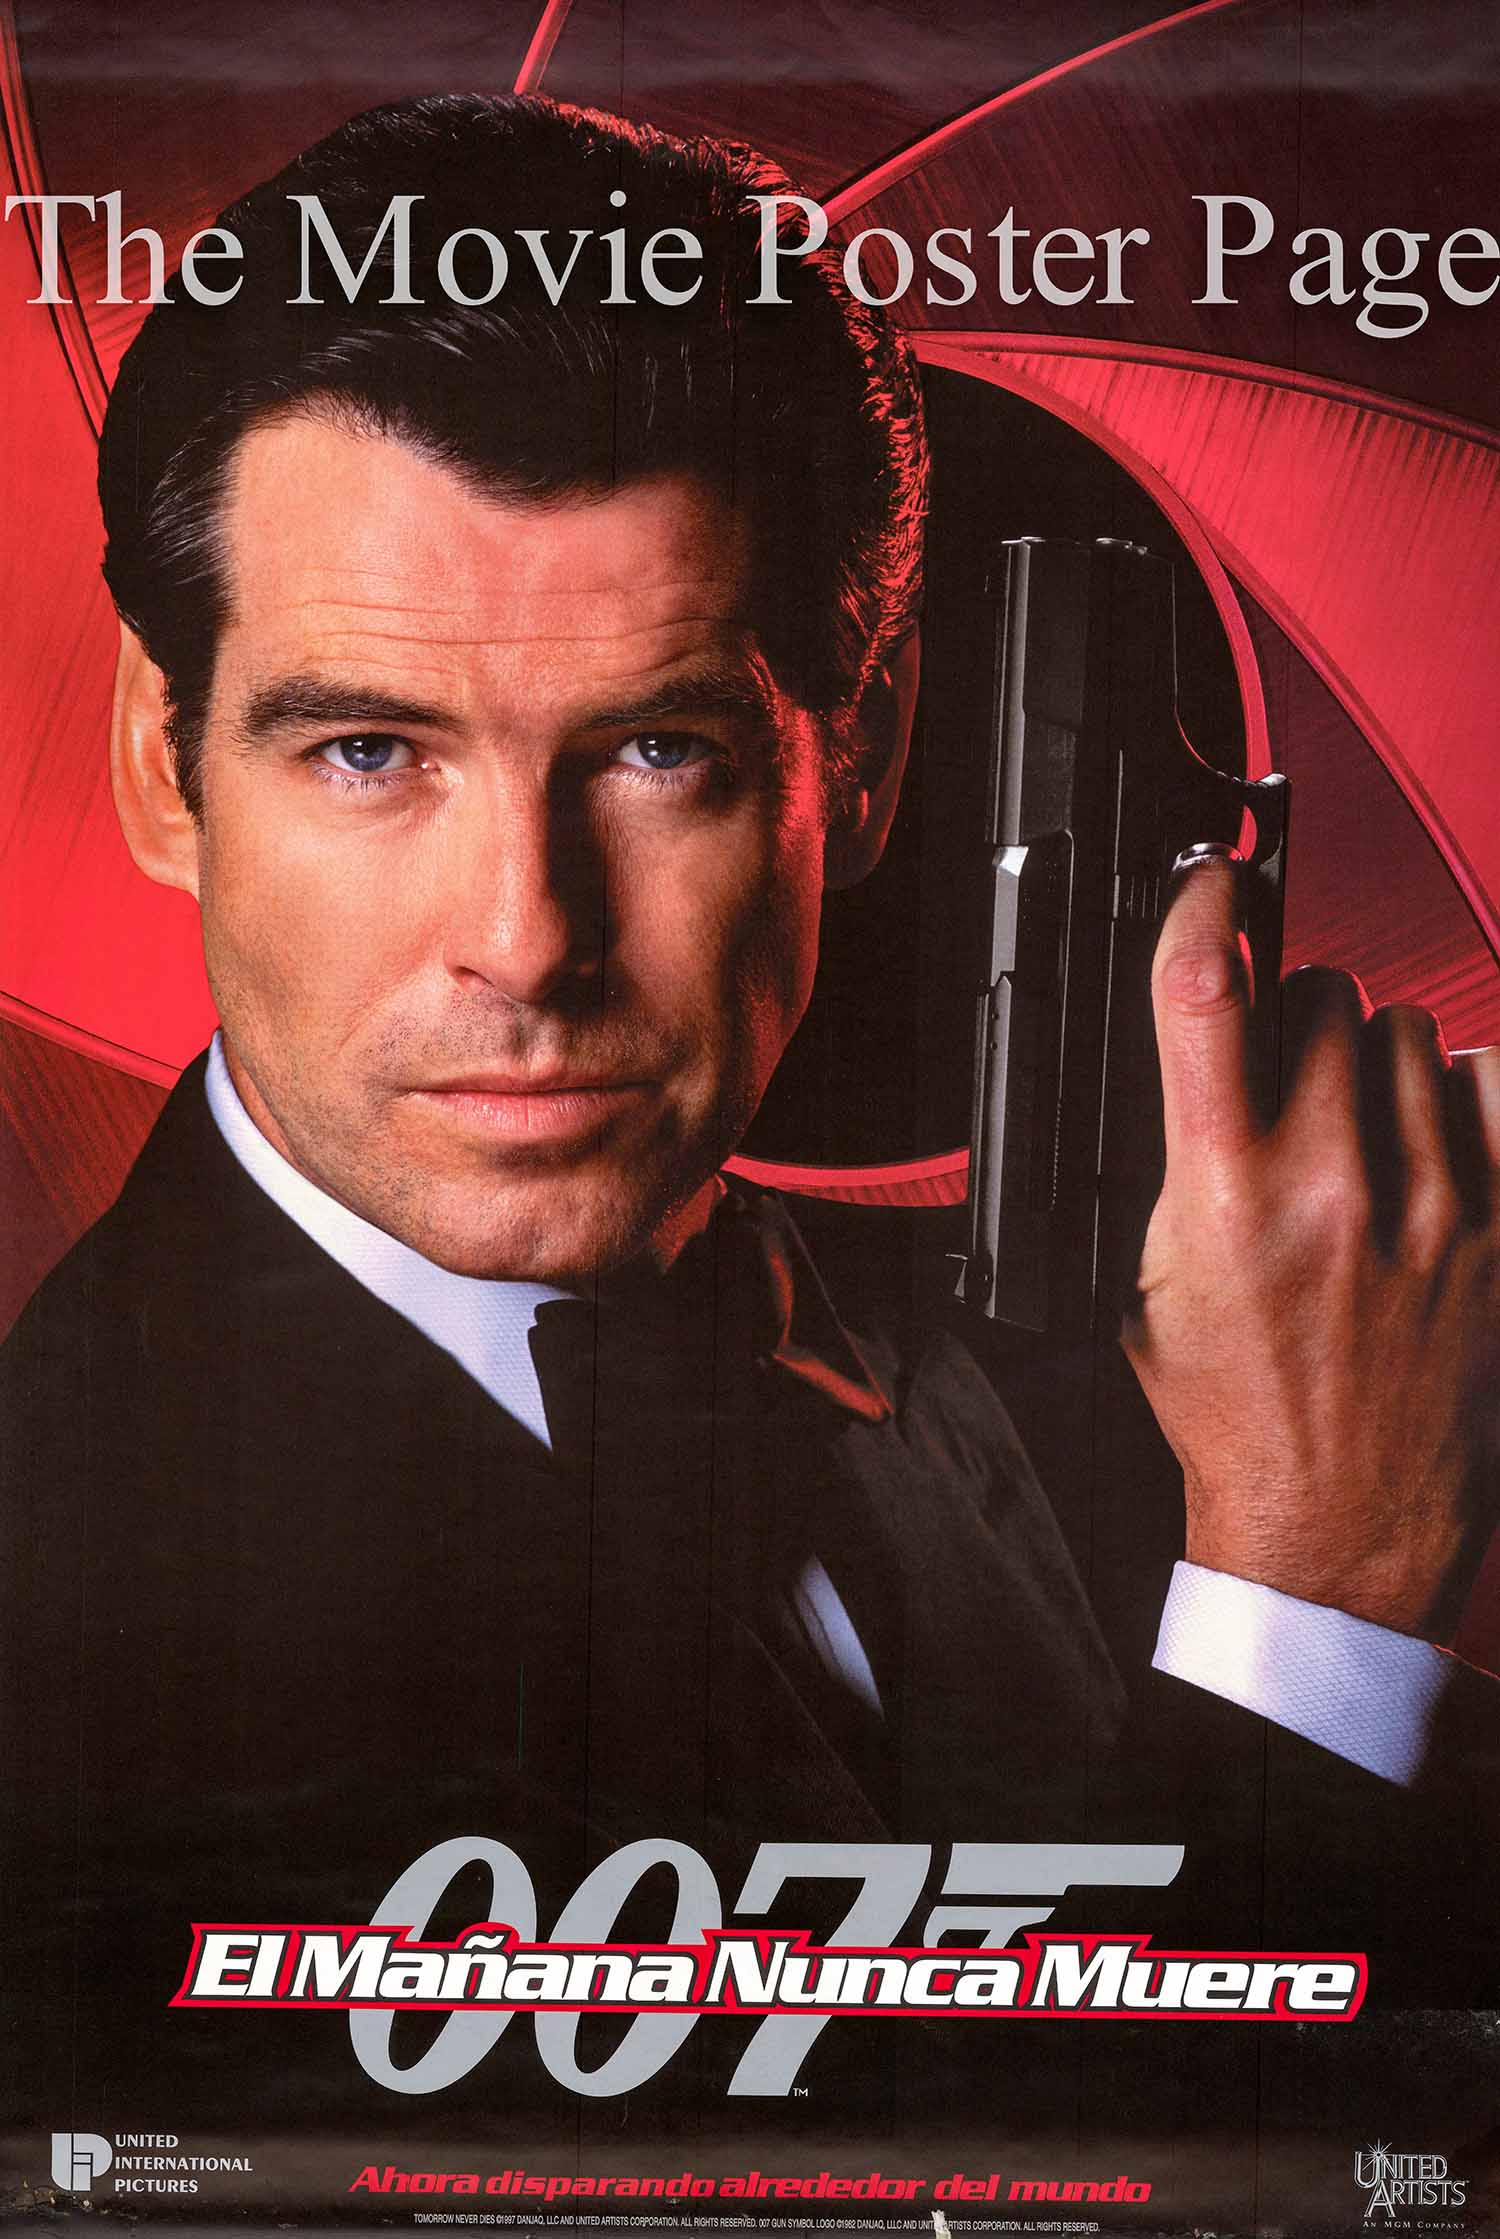 Pictured is a UK quad promotional poster for the 1997 Roger Spotiswoode film Tomorrow Never Dies starring Pierce Brosnan as James Bond.